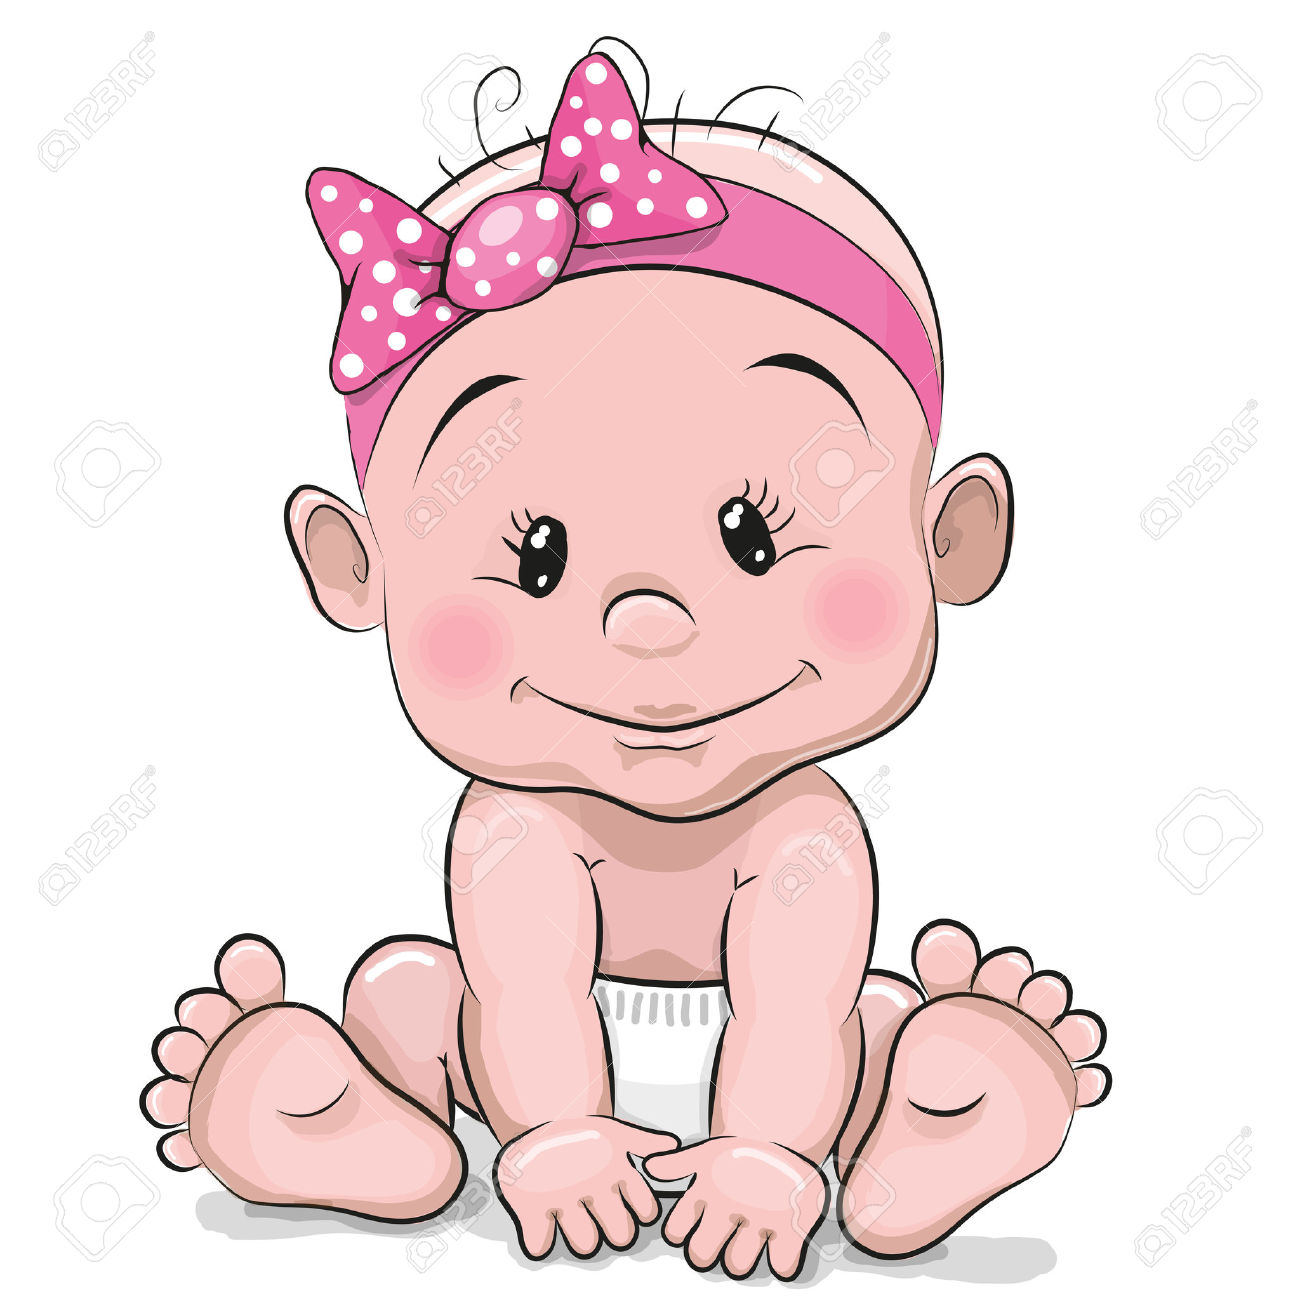 201,167 Human Baby Stock Illustrations, Cliparts And Royalty Free.